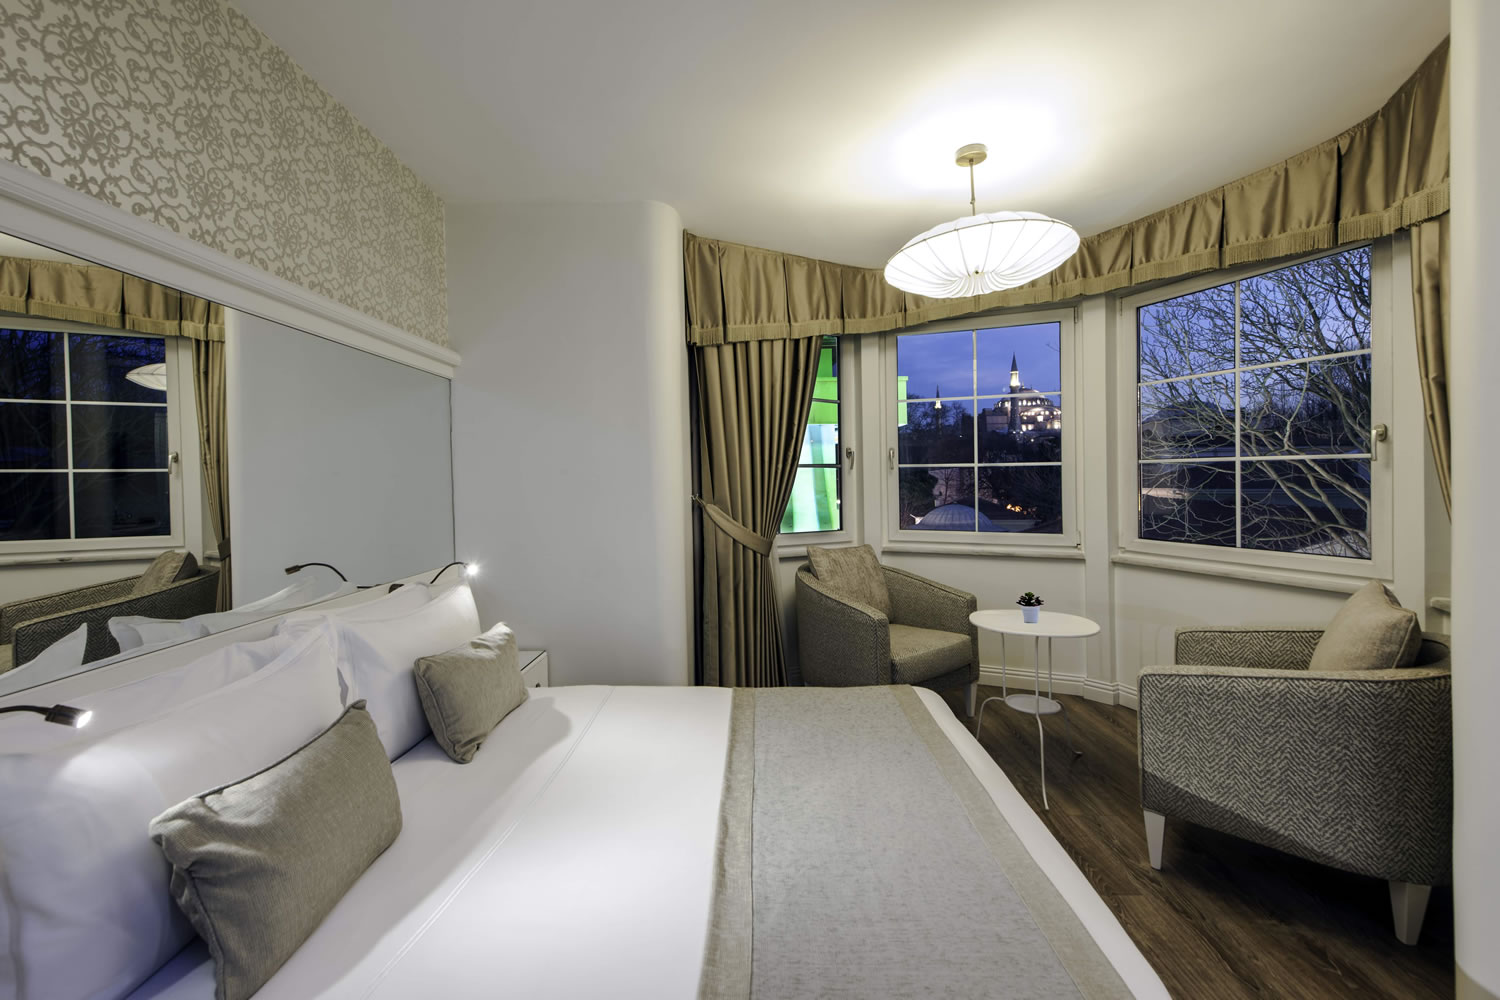 Deluxe double room with Hagia Sophia View